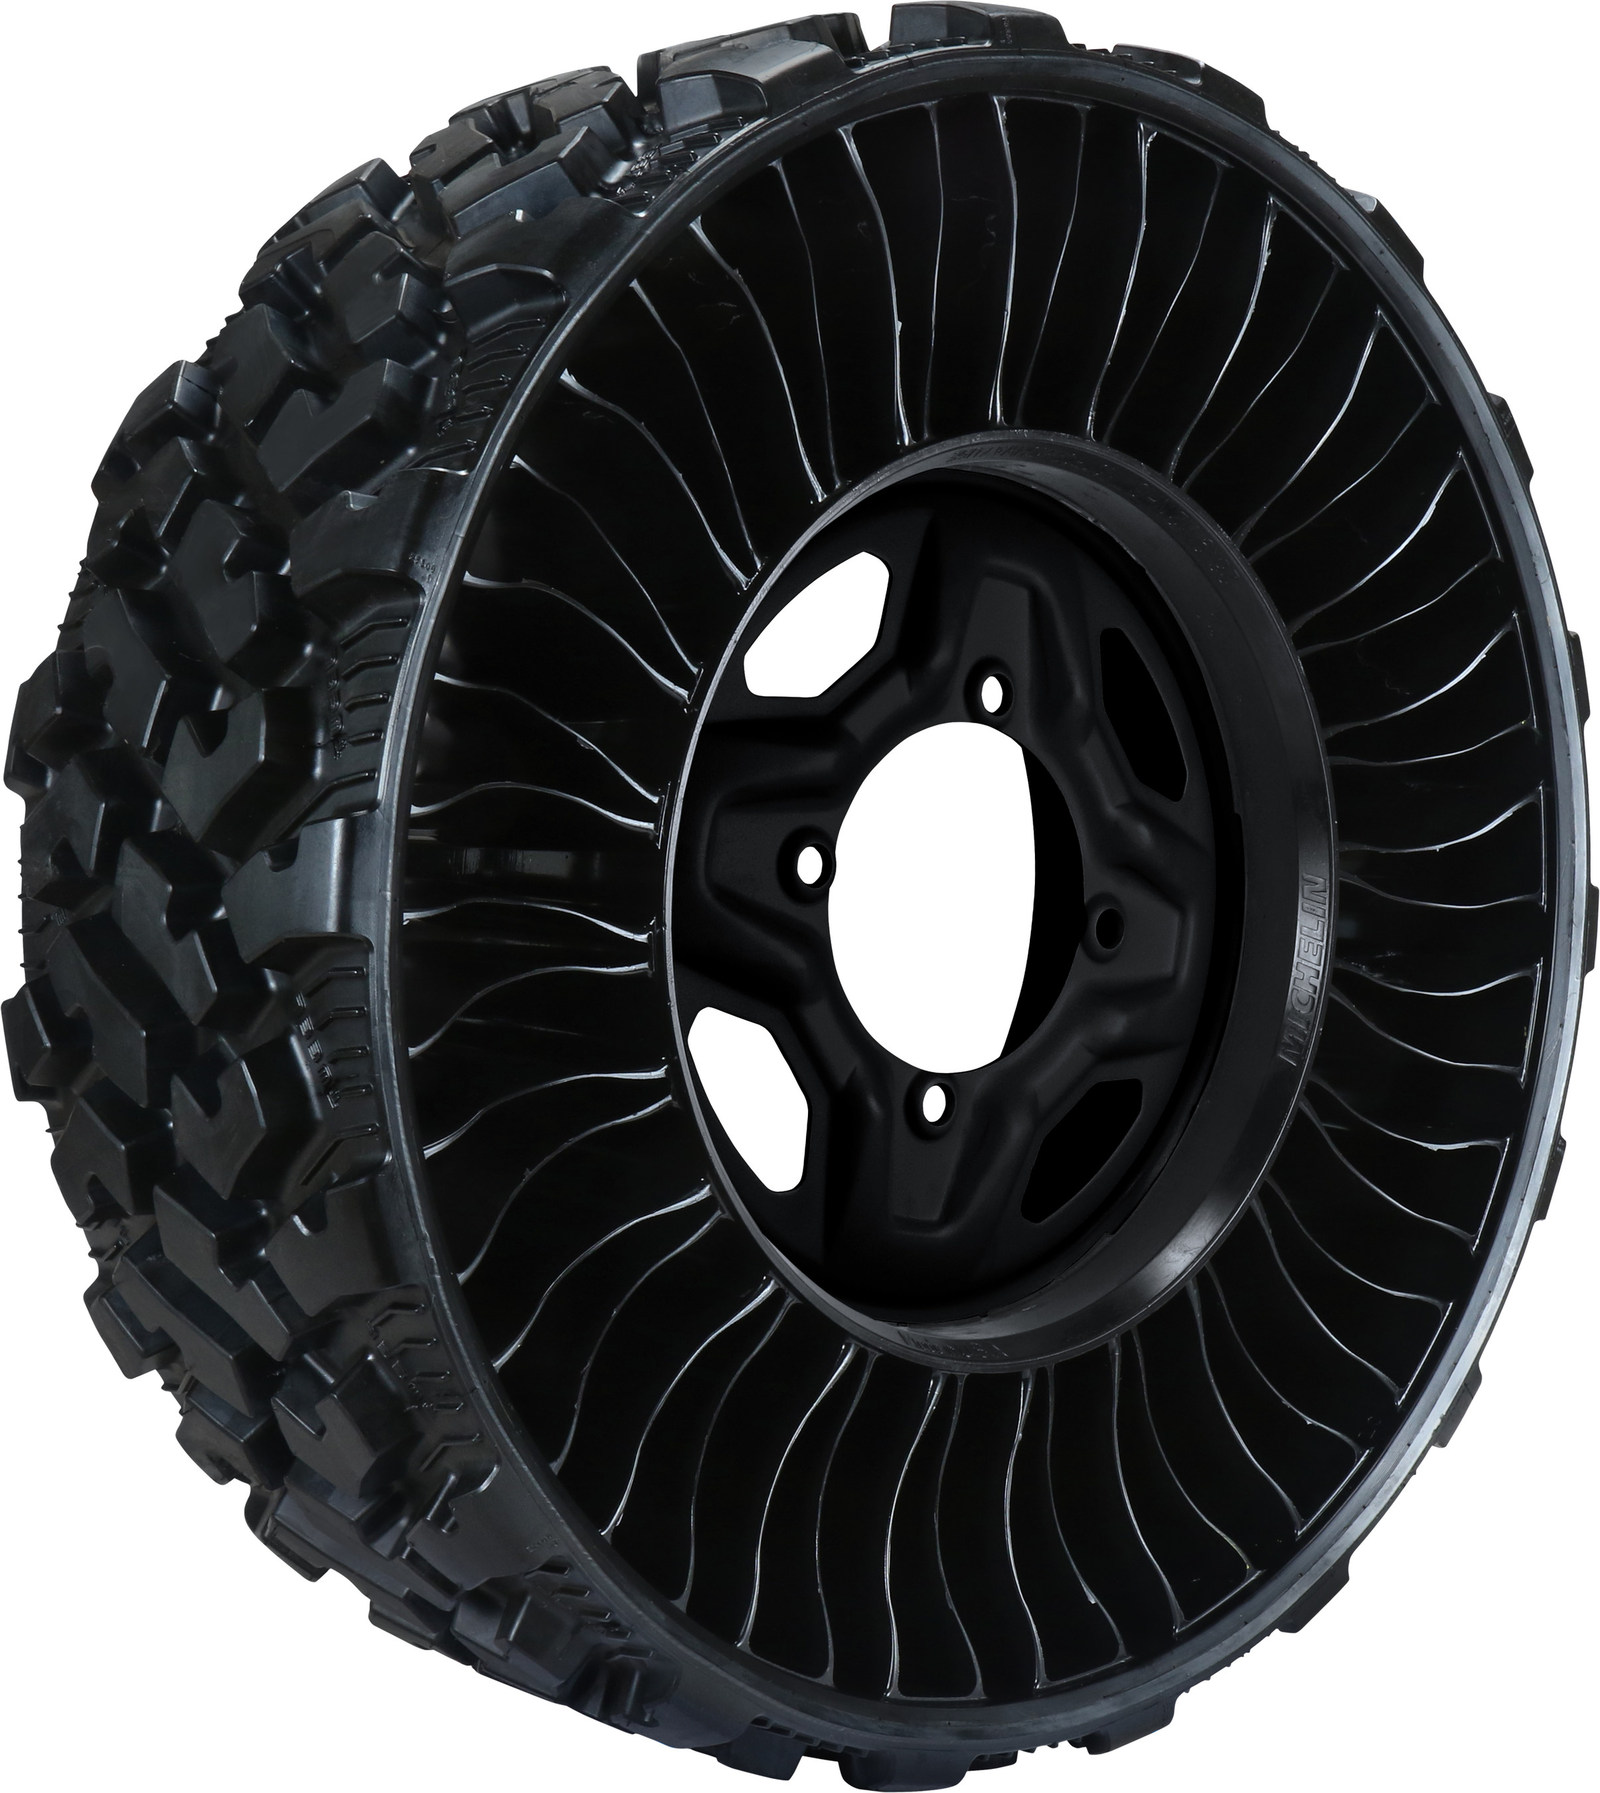 The MICHELIN X TWEEL UTV airless radial tire